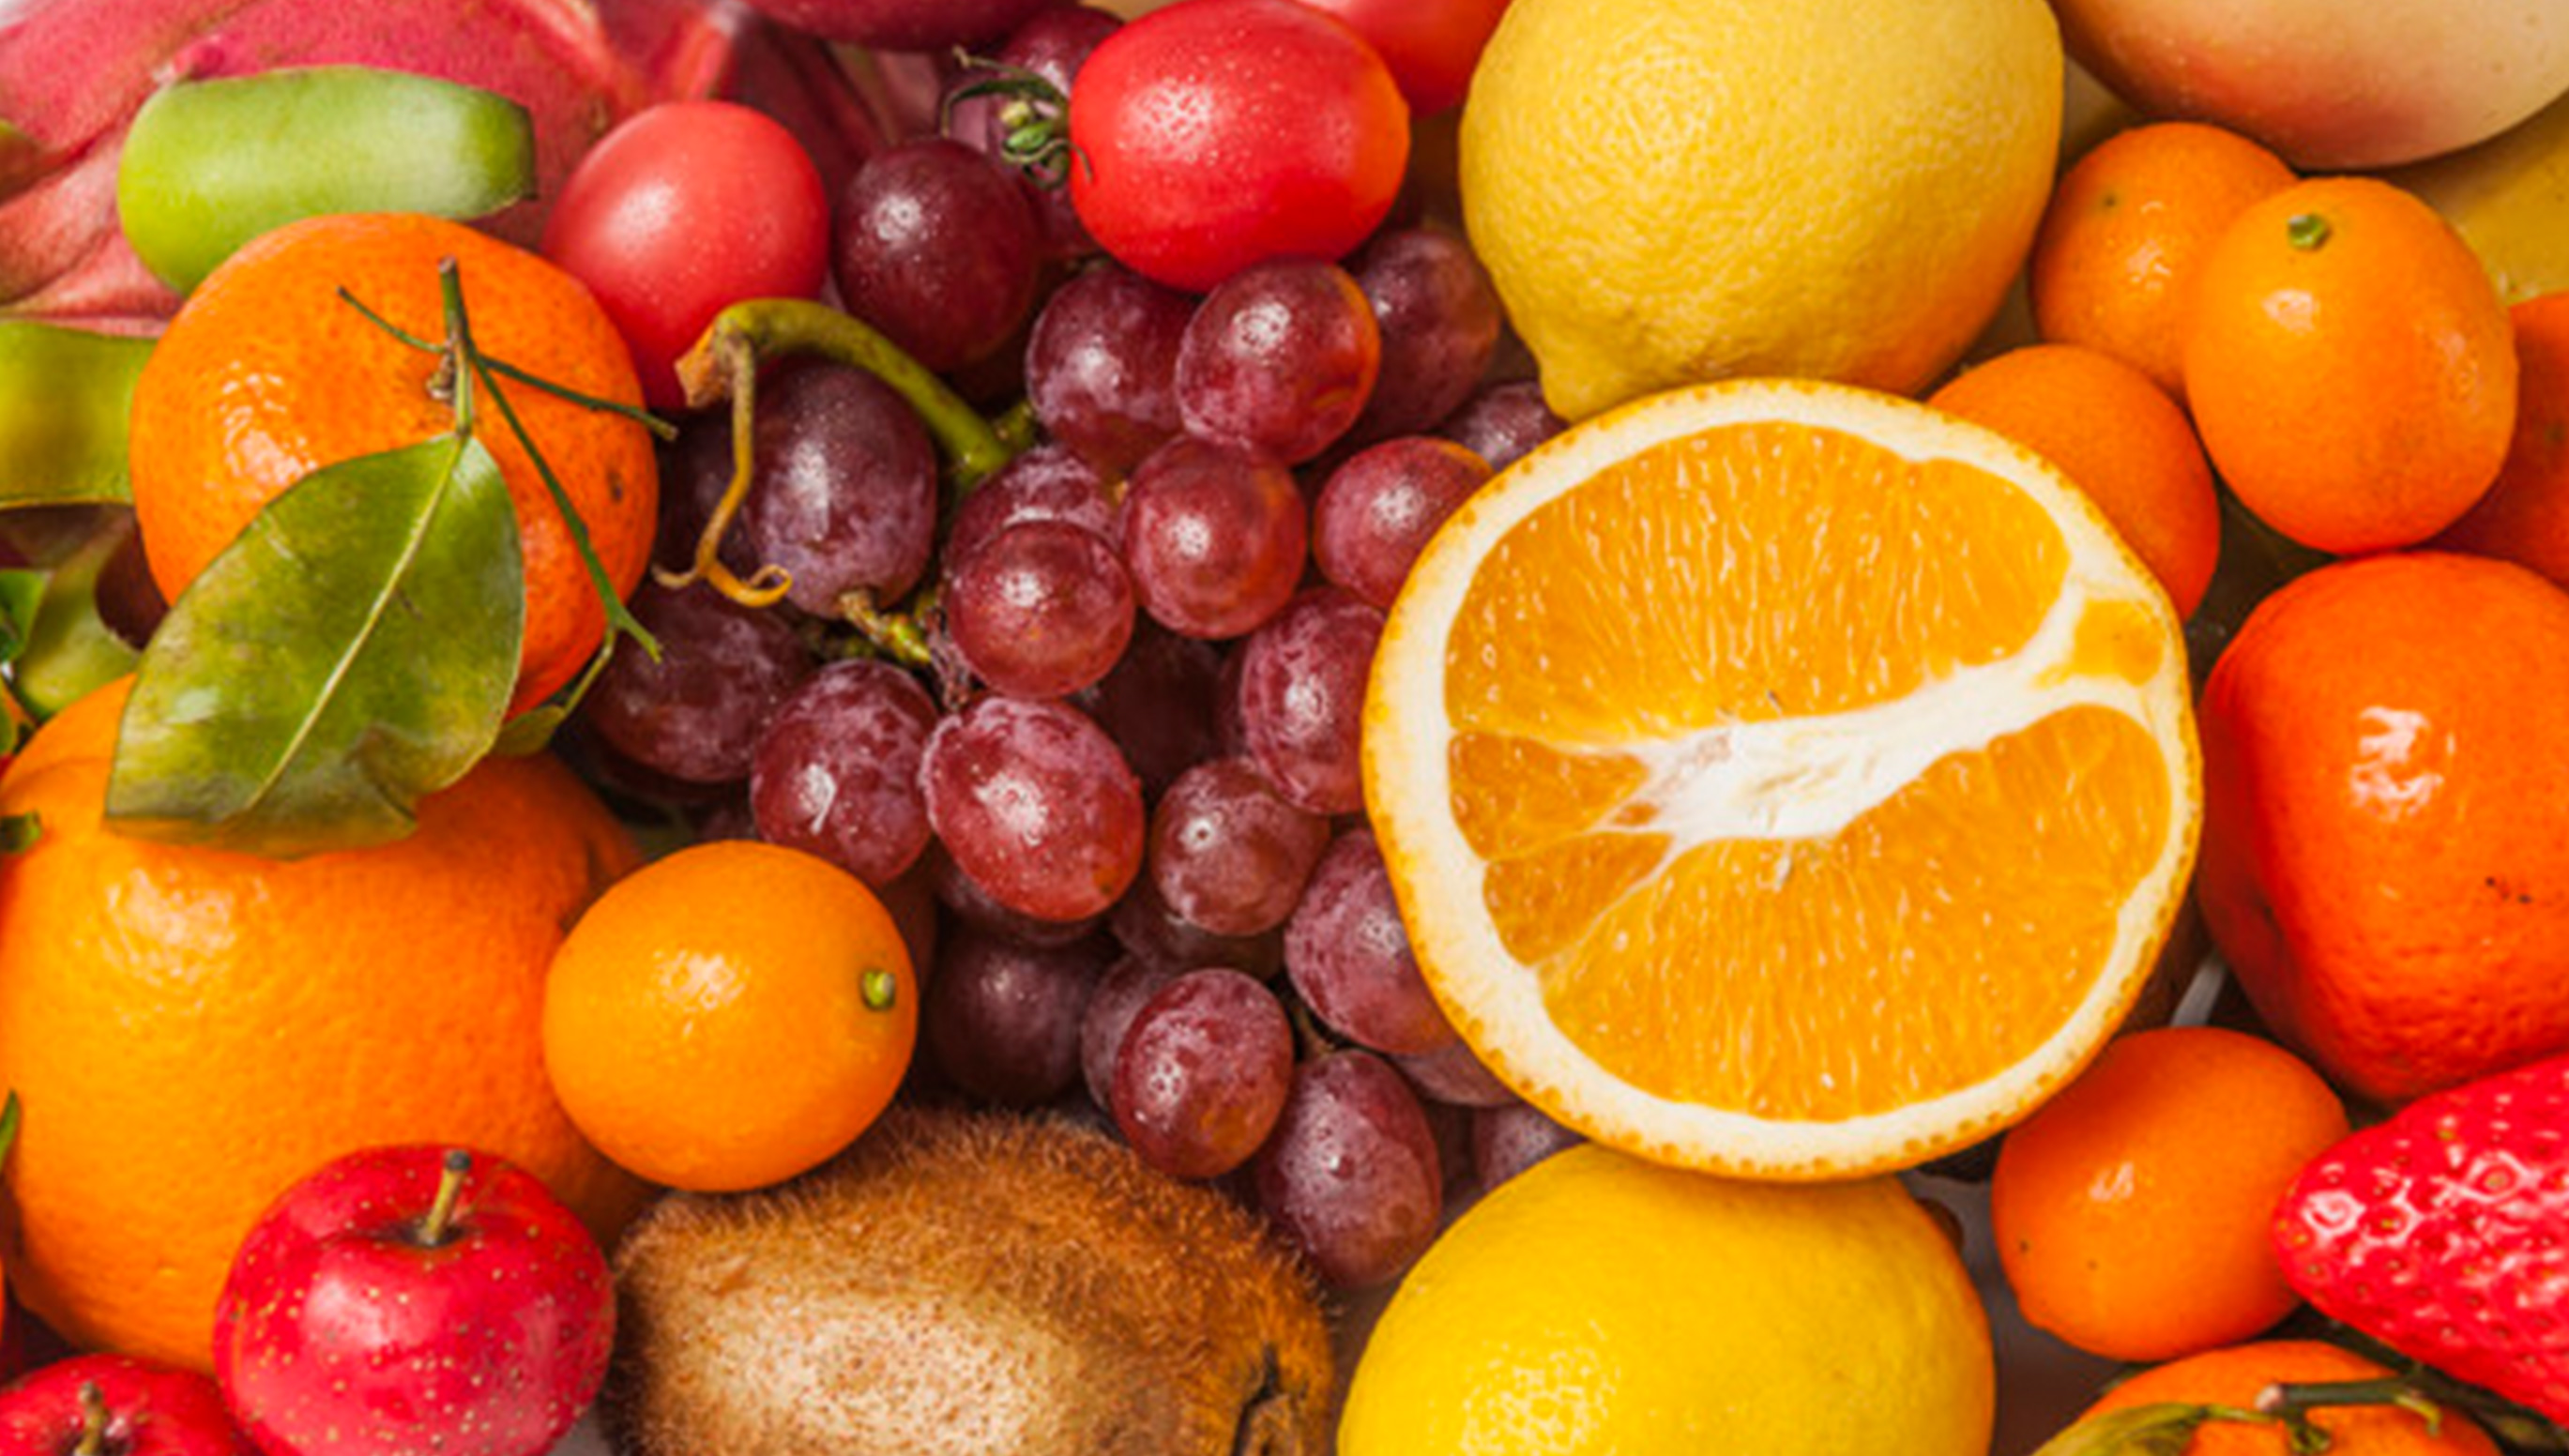 HFruits with Benefits: How to Choose the Best Juicy Fruits